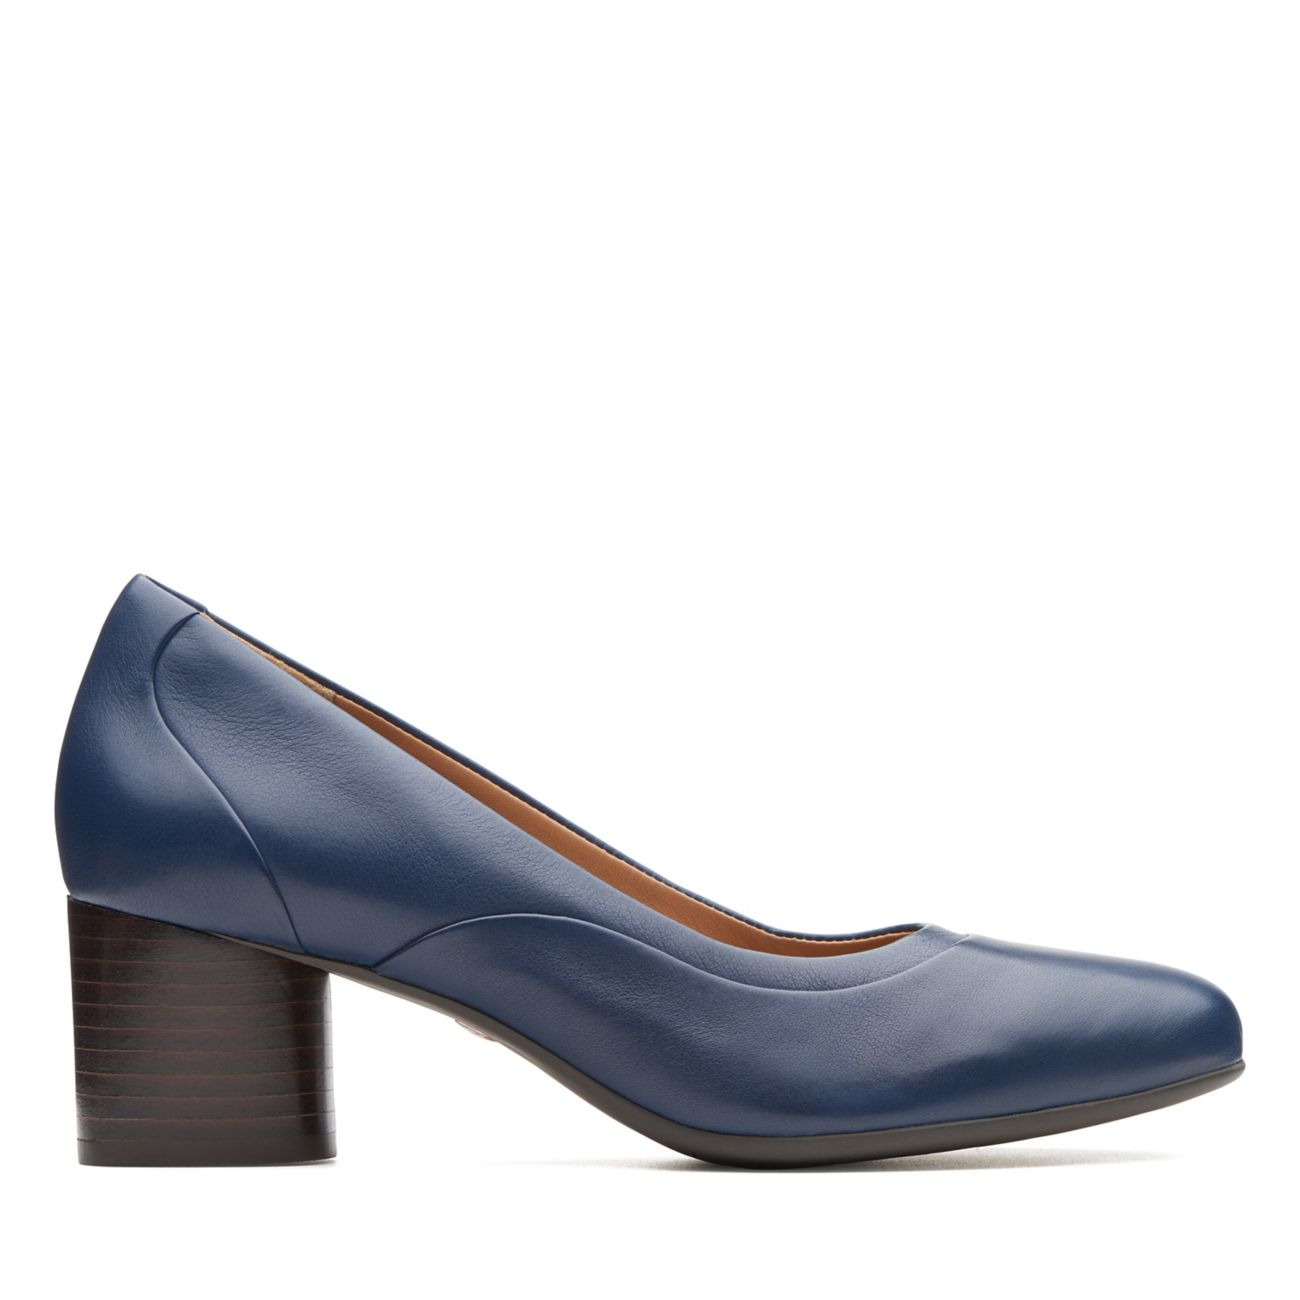 CLARKS Un Cosmo Step Womens Pumps Navy Leather 7